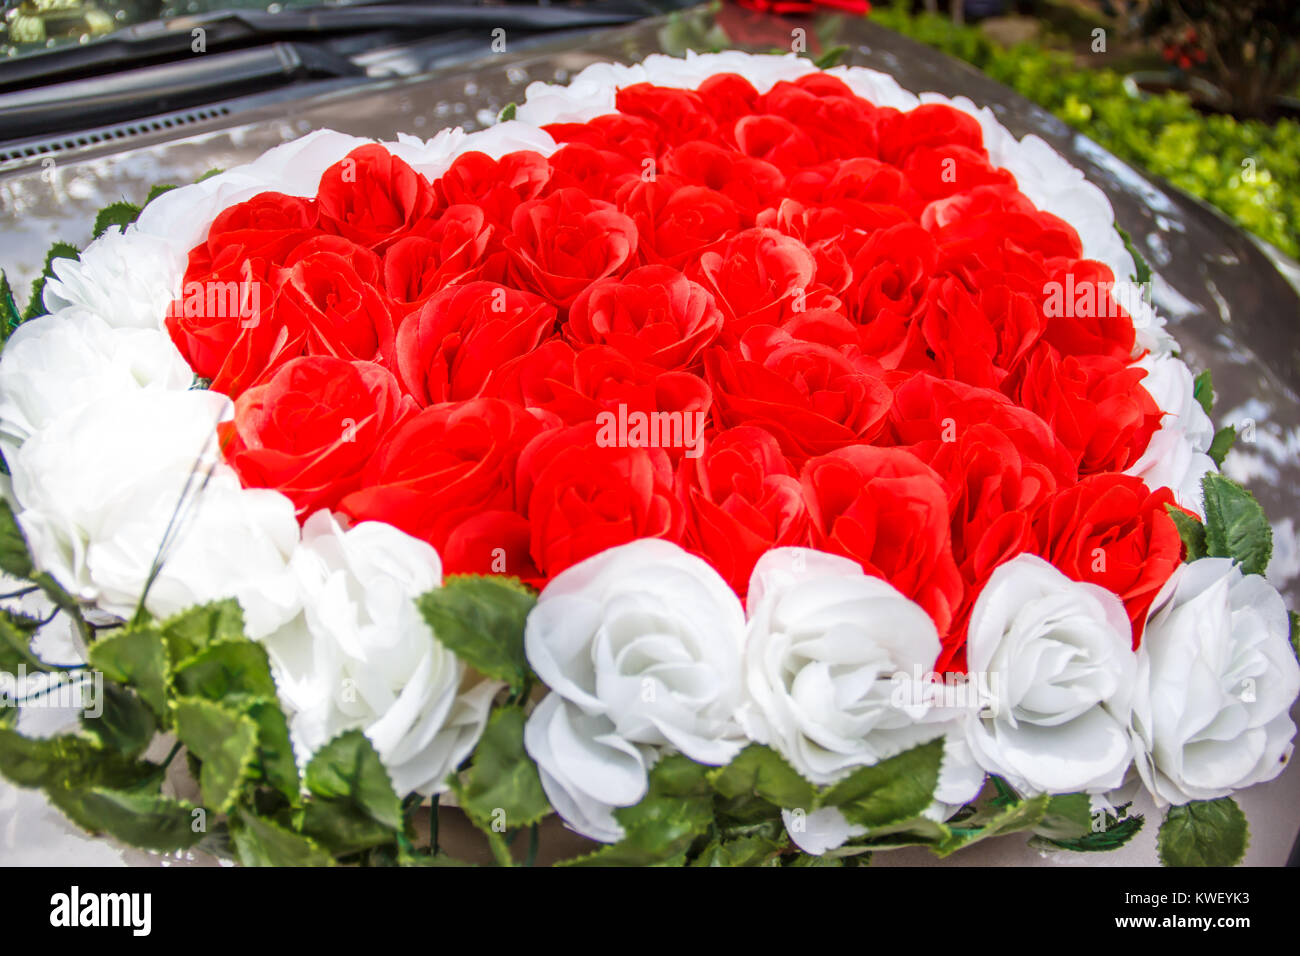 Heart Shaped Red And White Roses Wedding Flower Bouquet In Front Of